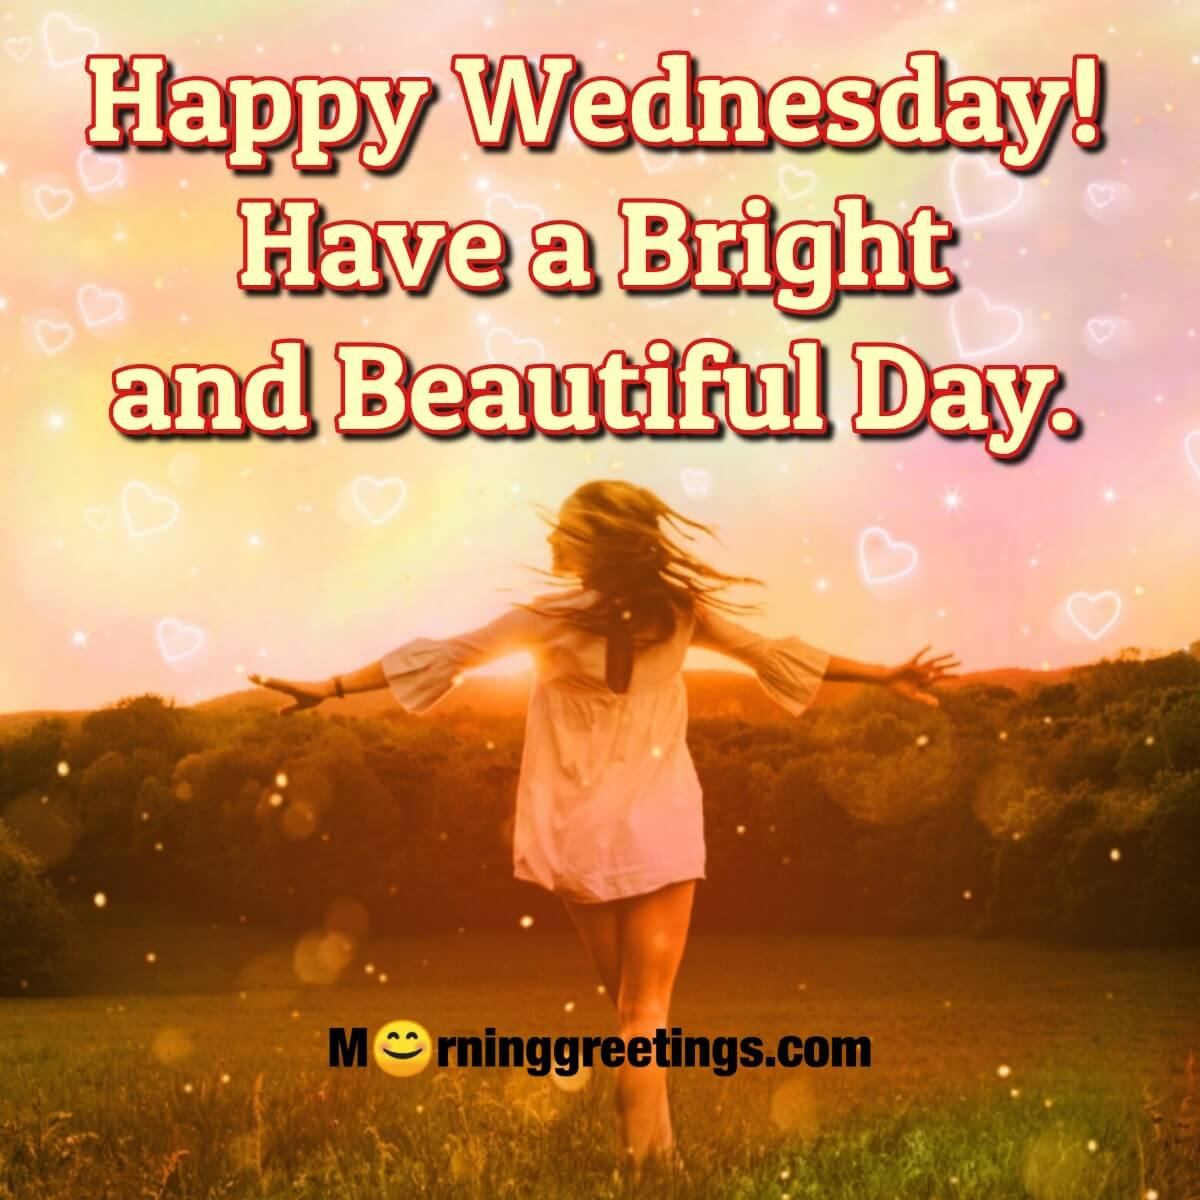 70 Wonderful Wednesday Quotes Wishes Pics